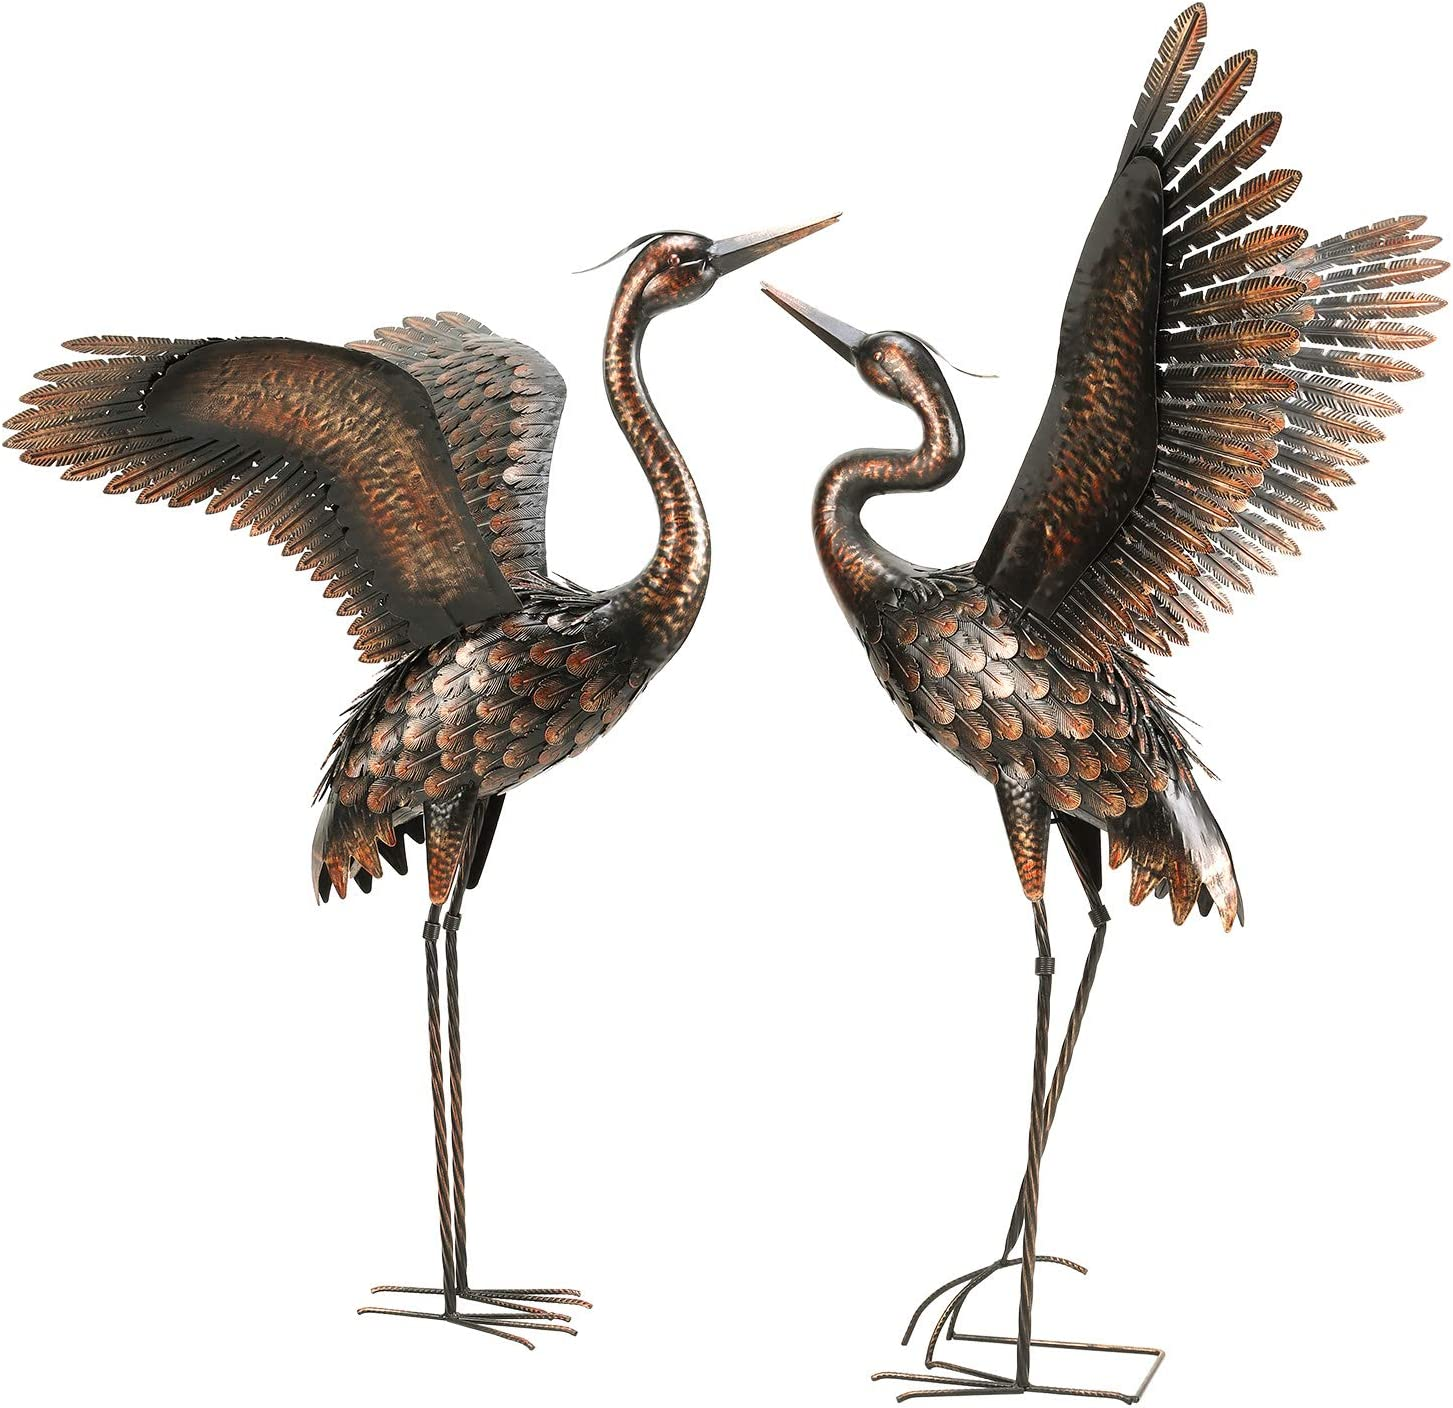 chisheen Garden Crane Statues for Outdoor Metal Yard Art Heron Statues Sculptures